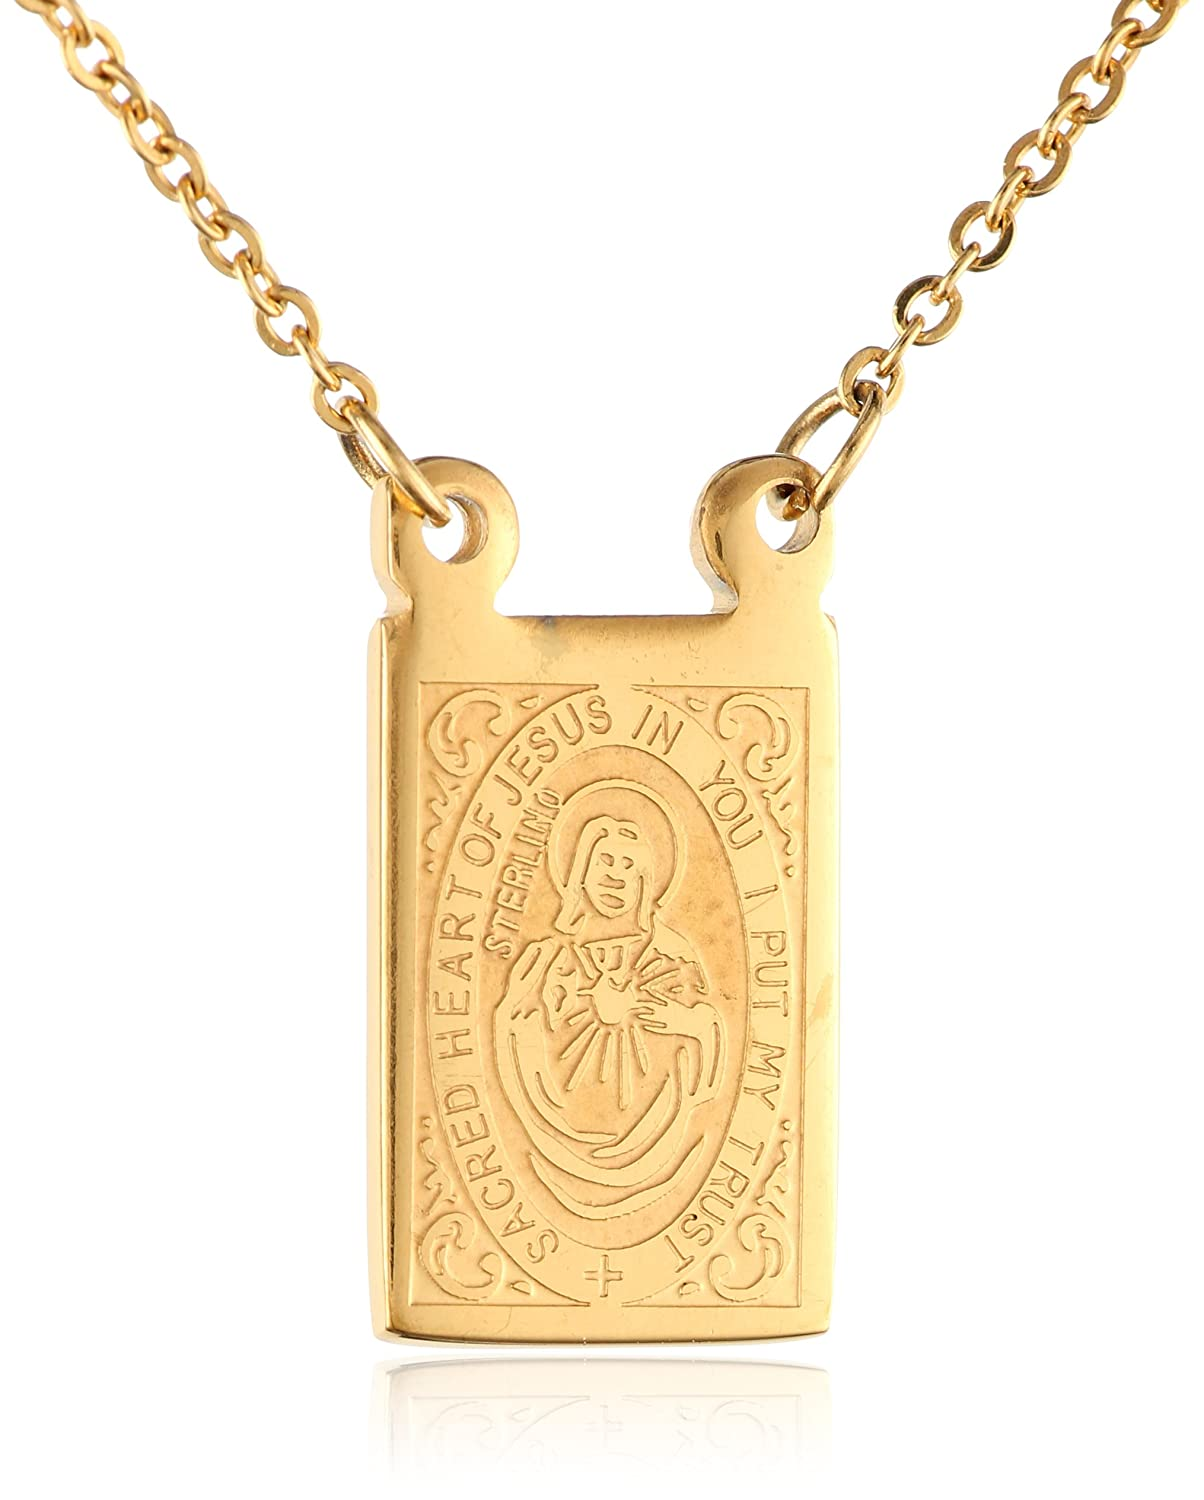 the scapular bronze catholic medal company necklace